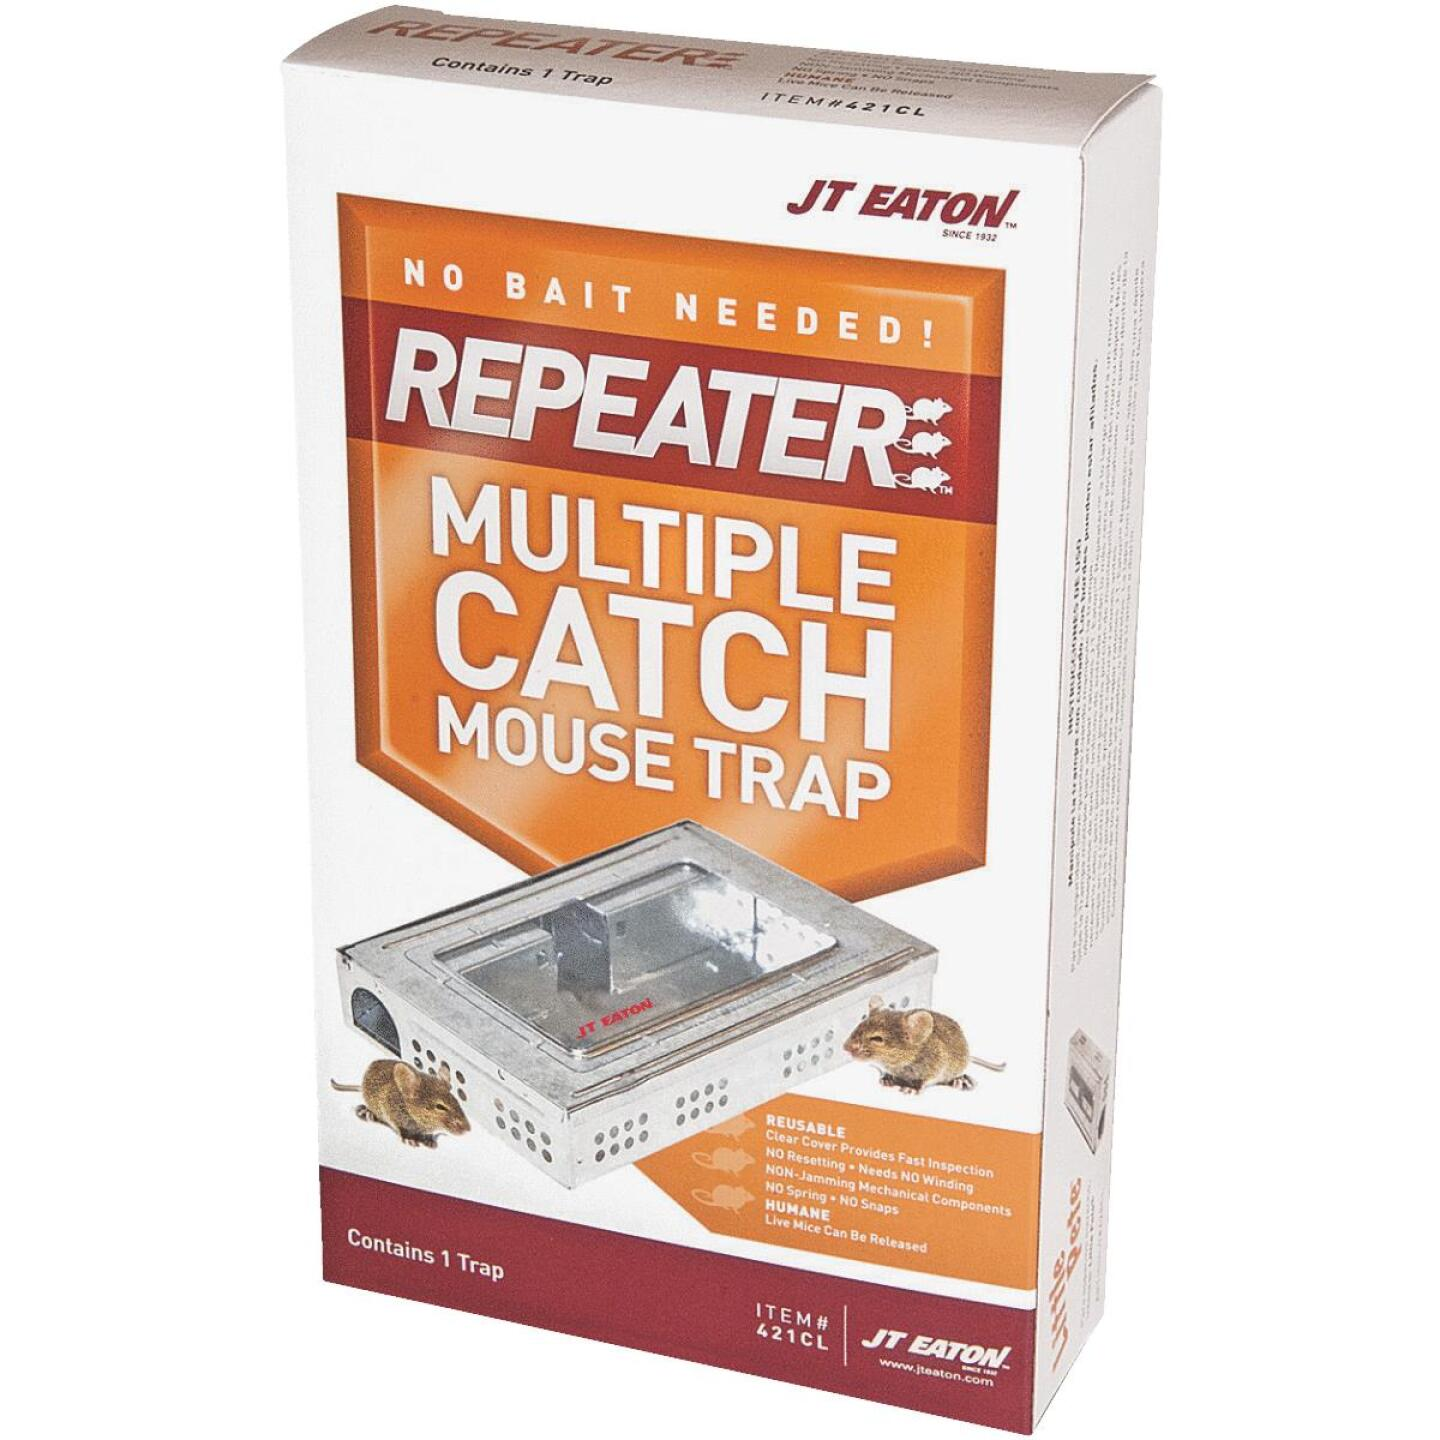 JT Eaton Repeater Multiple Catch Mechanical Mouse Trap with Inspection Window (1-Pack) Image 1